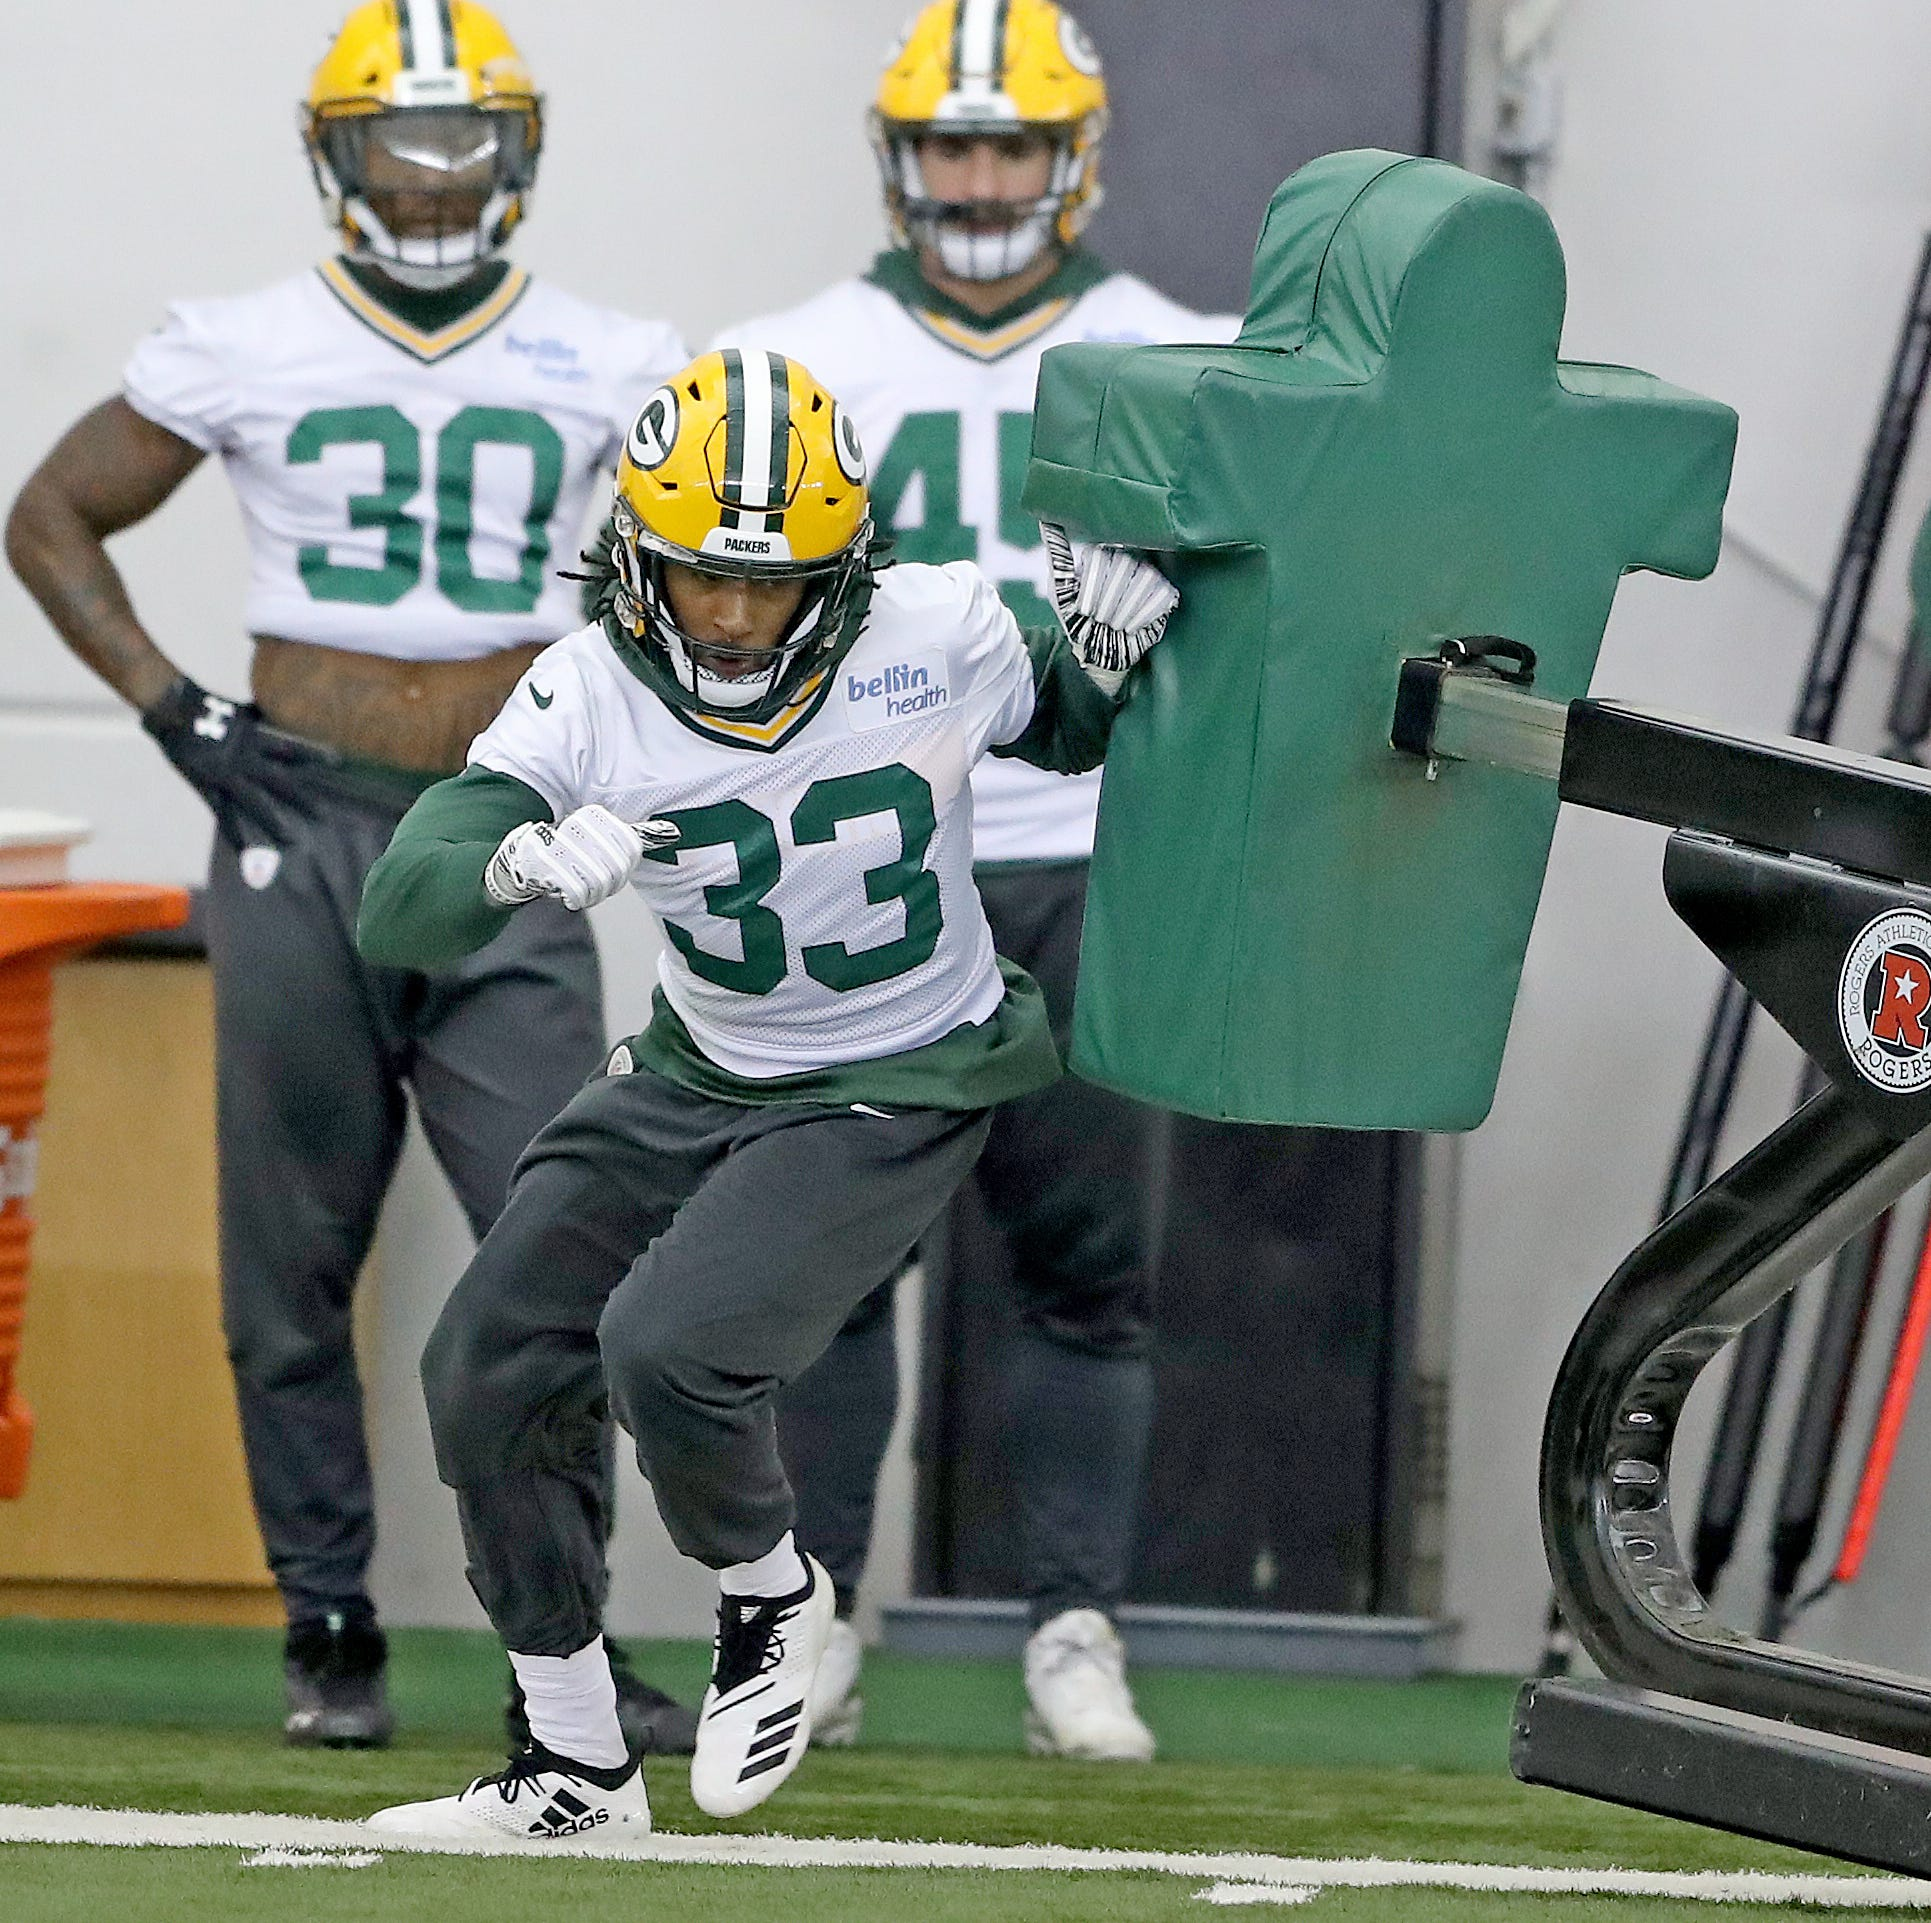 Packers notes: Aaron Jones eyes milestone despite limited carries